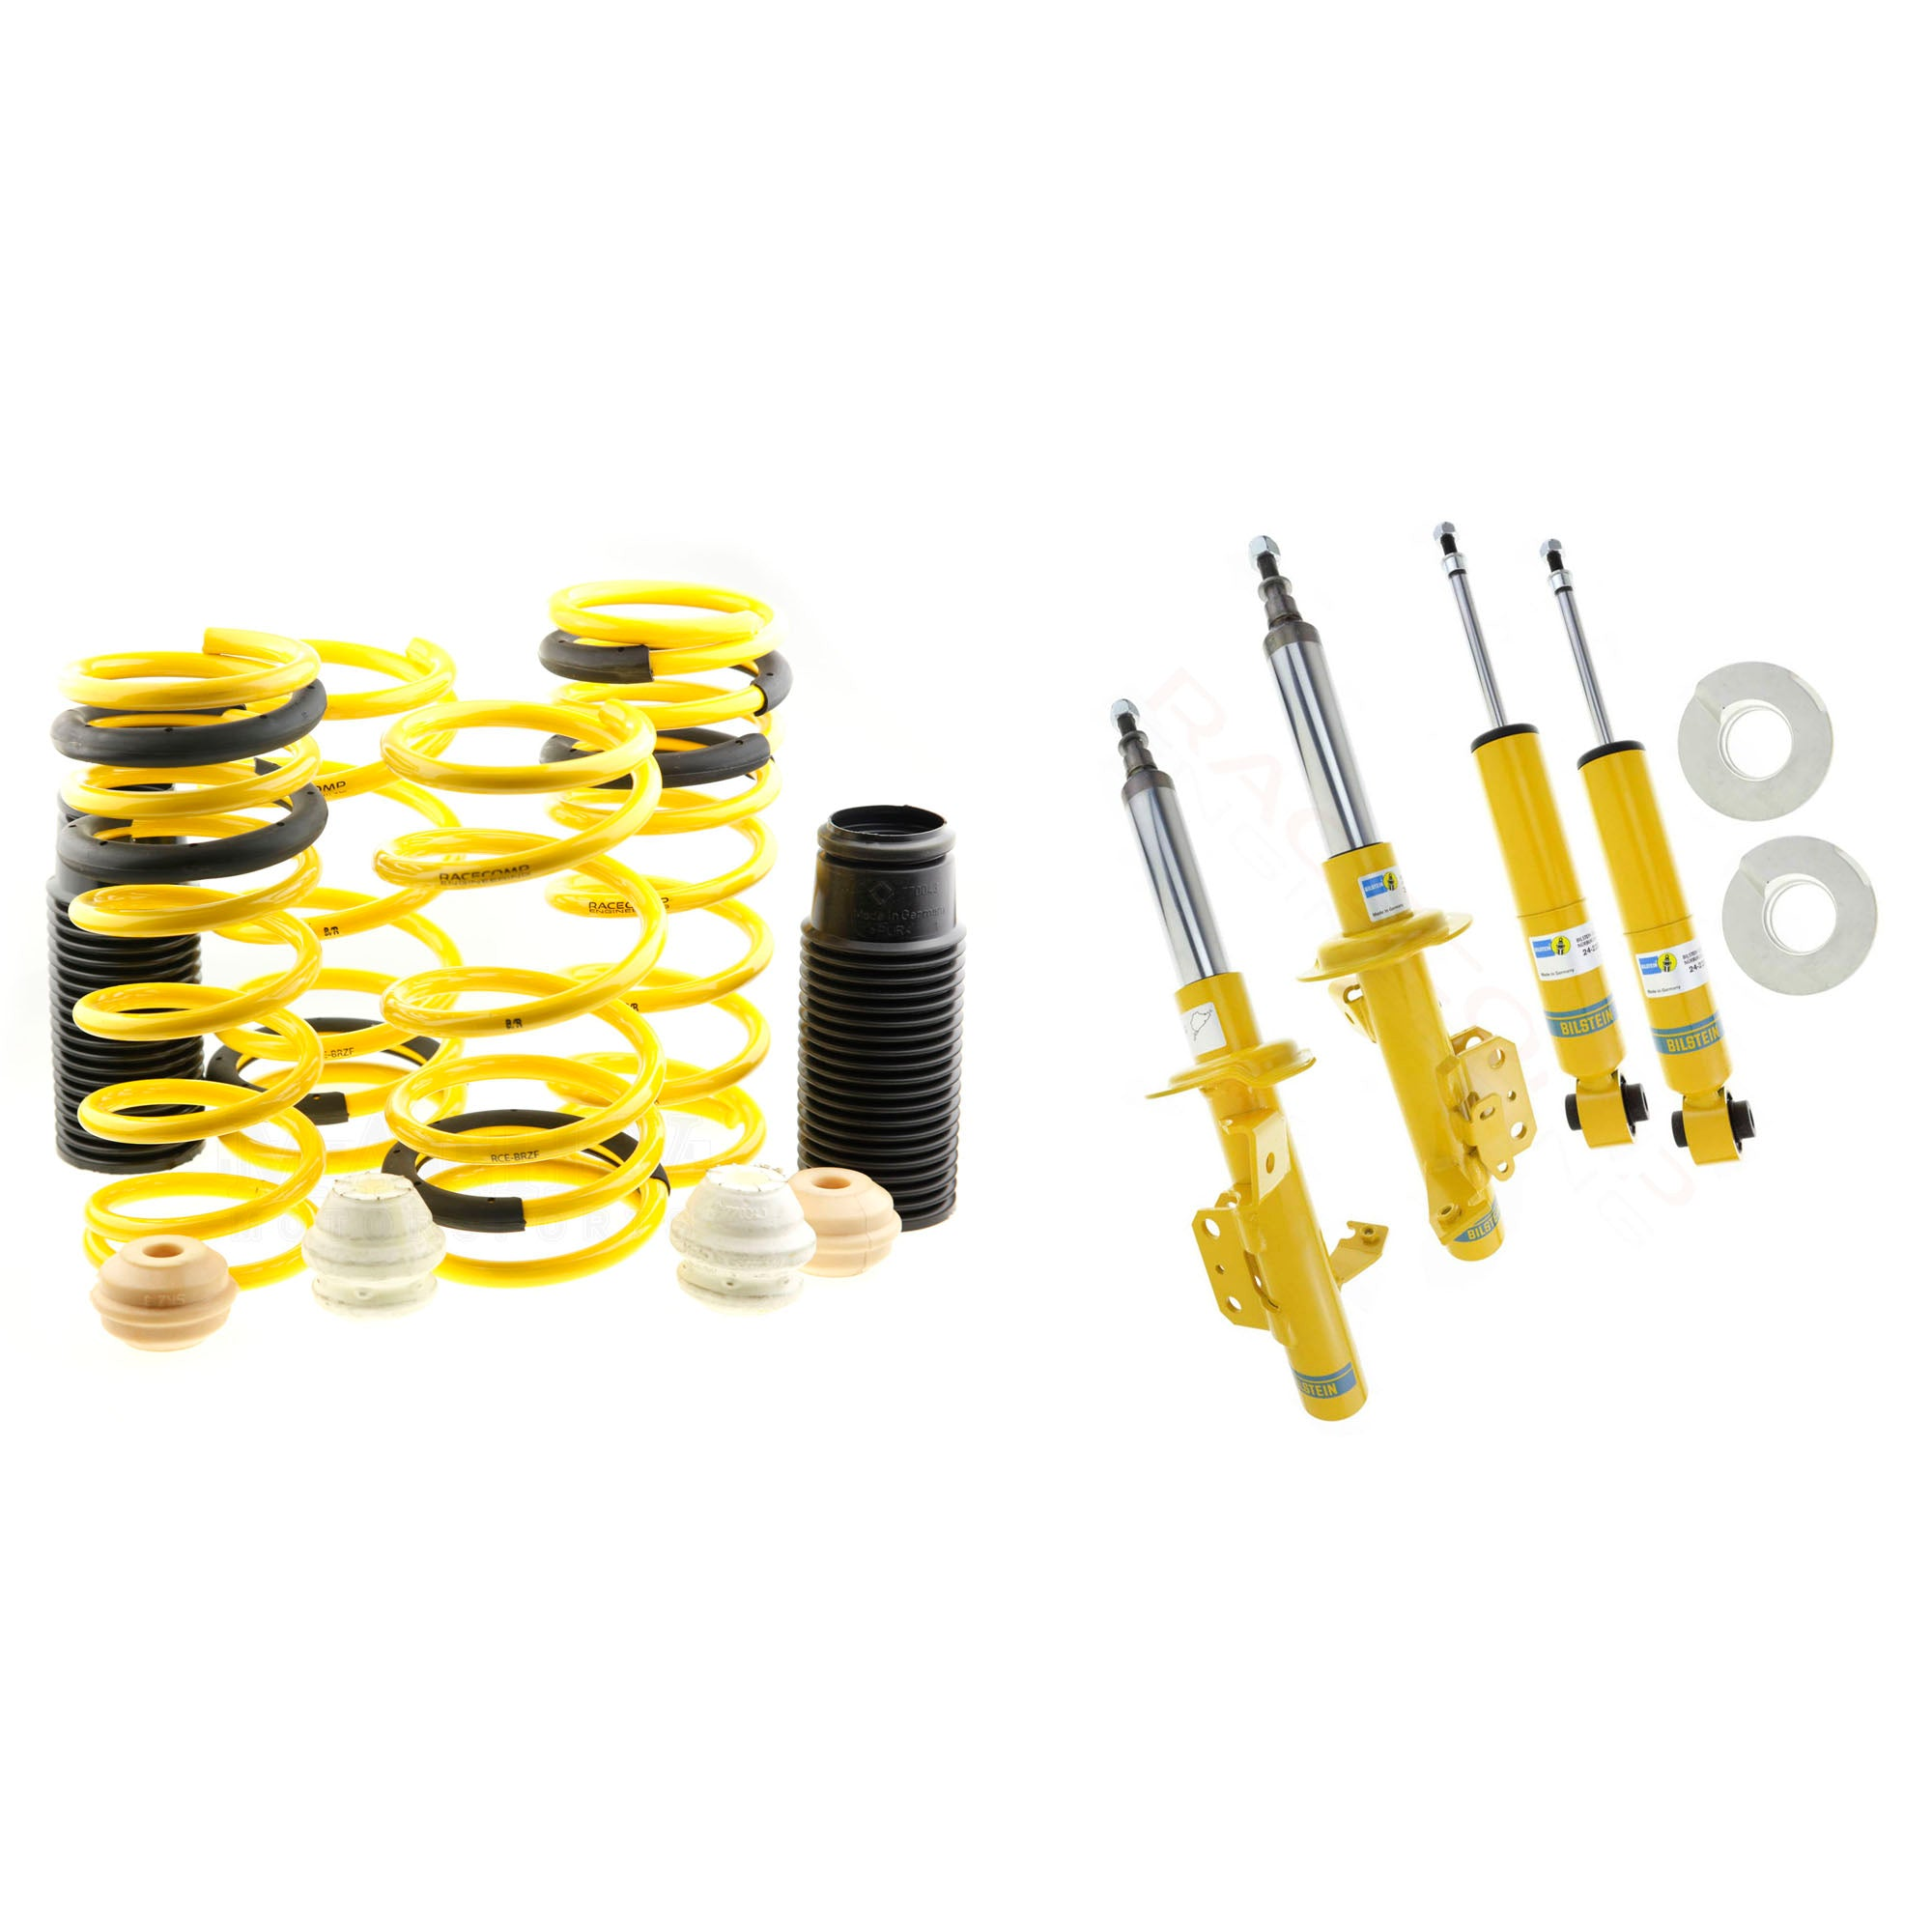 Racecomp Engineering BILSTEIN Shock Combo Package BRZ/FR-S/86